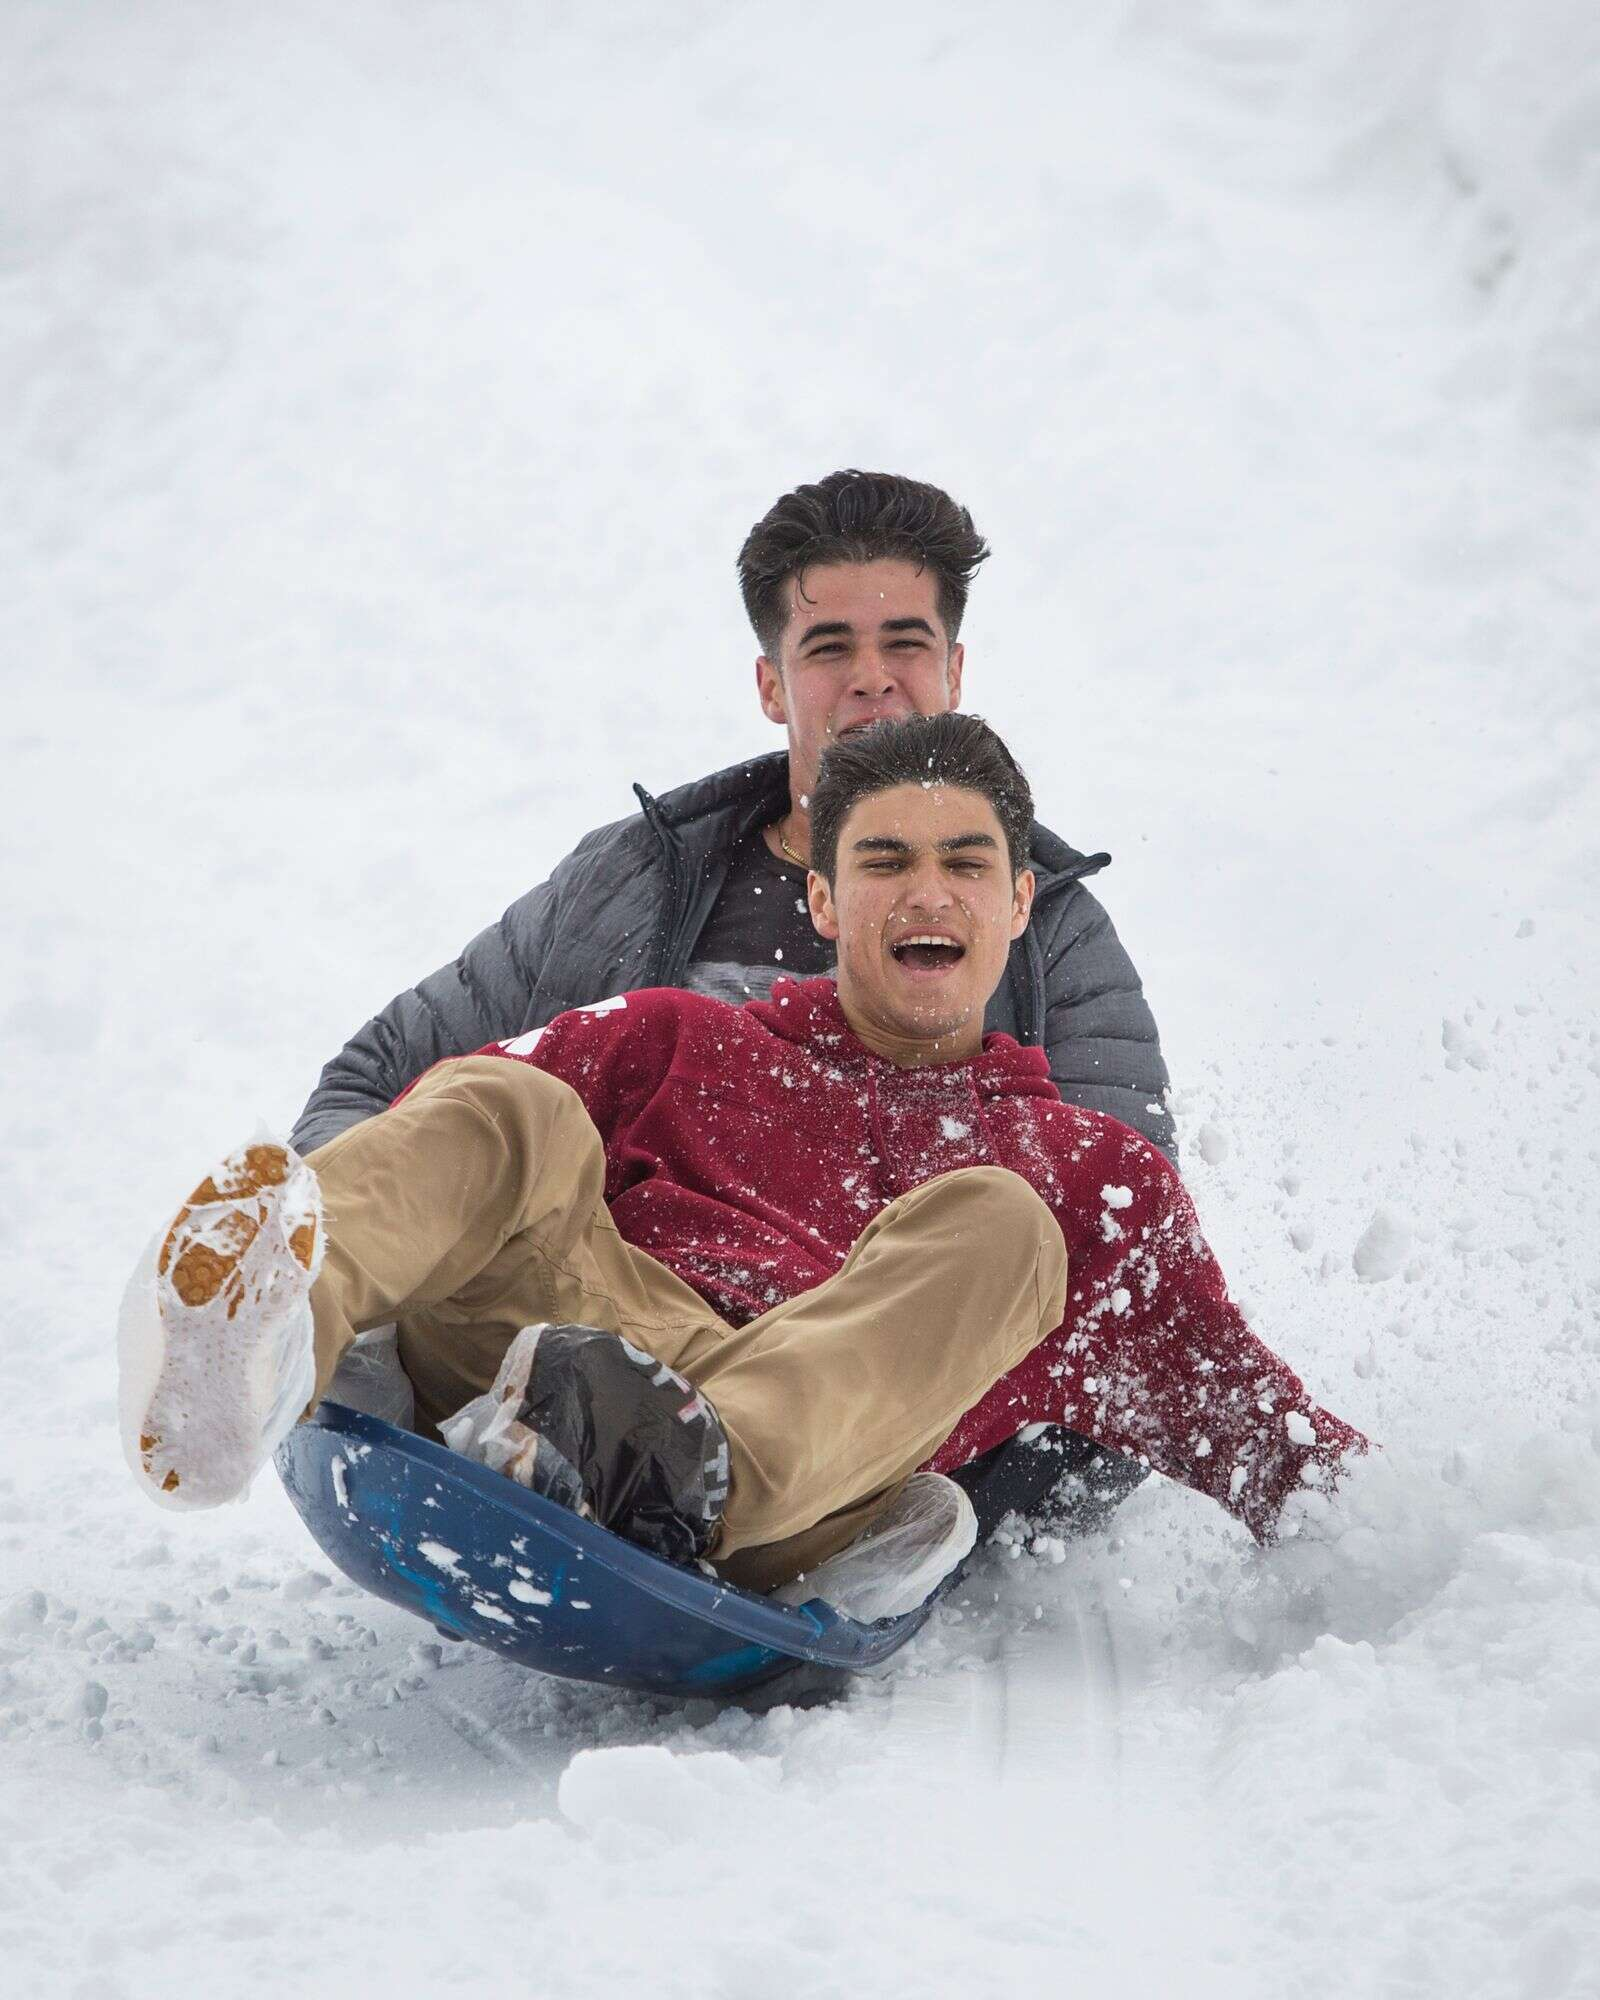 Snapshot: Spring in Park City is a wild ride